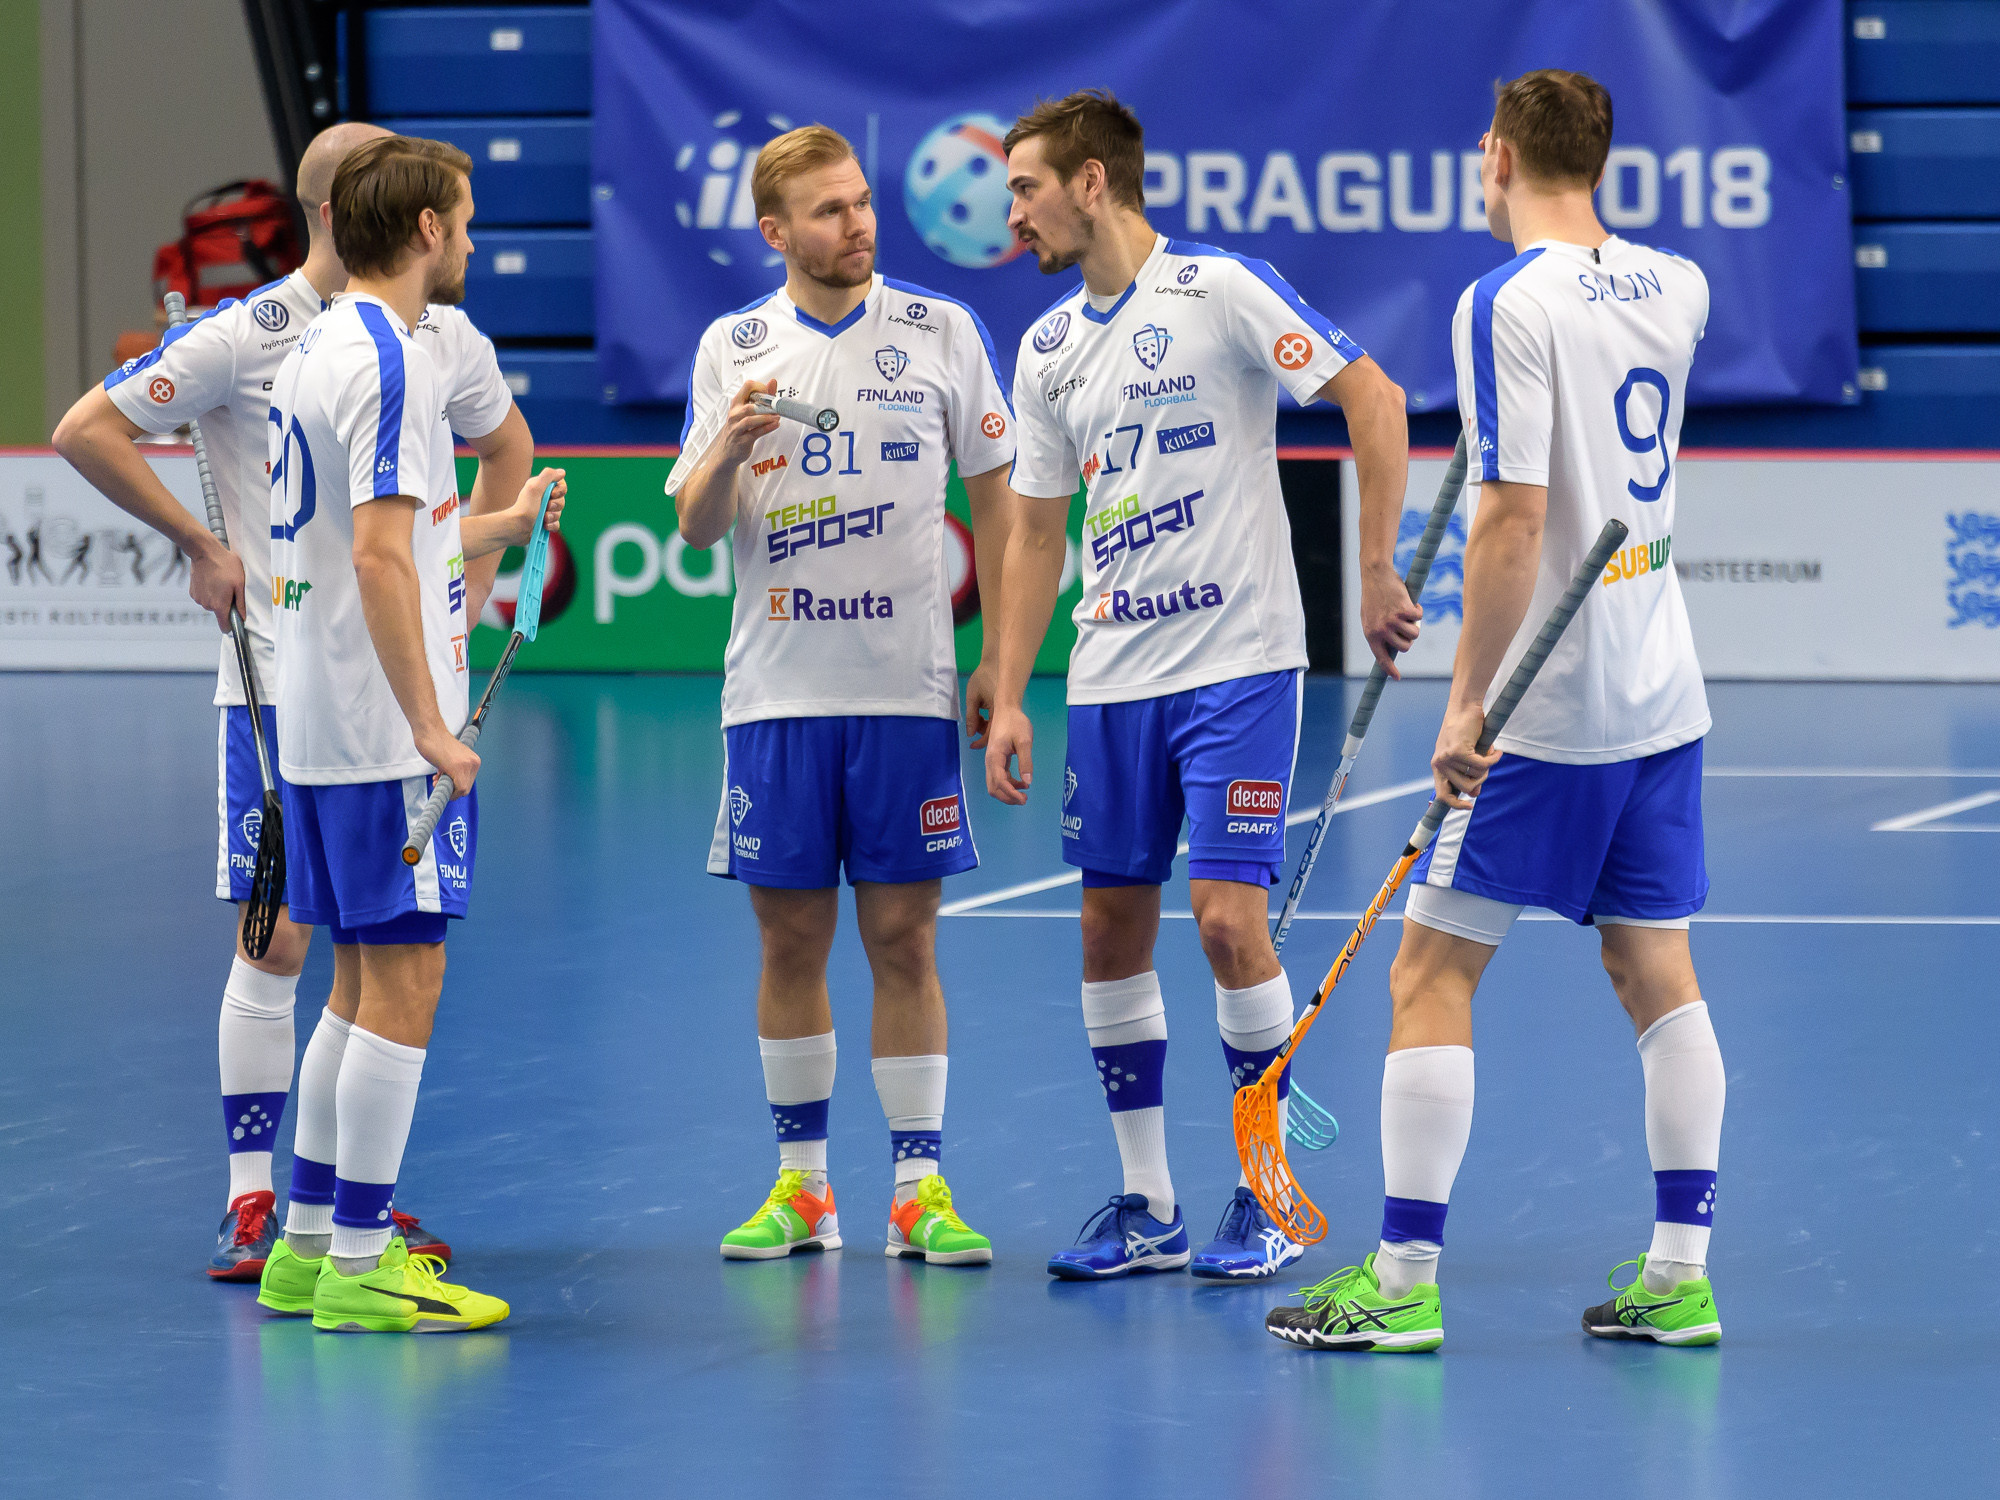 Finland continue dominance at IFF European Floorball World Championship qualifiers